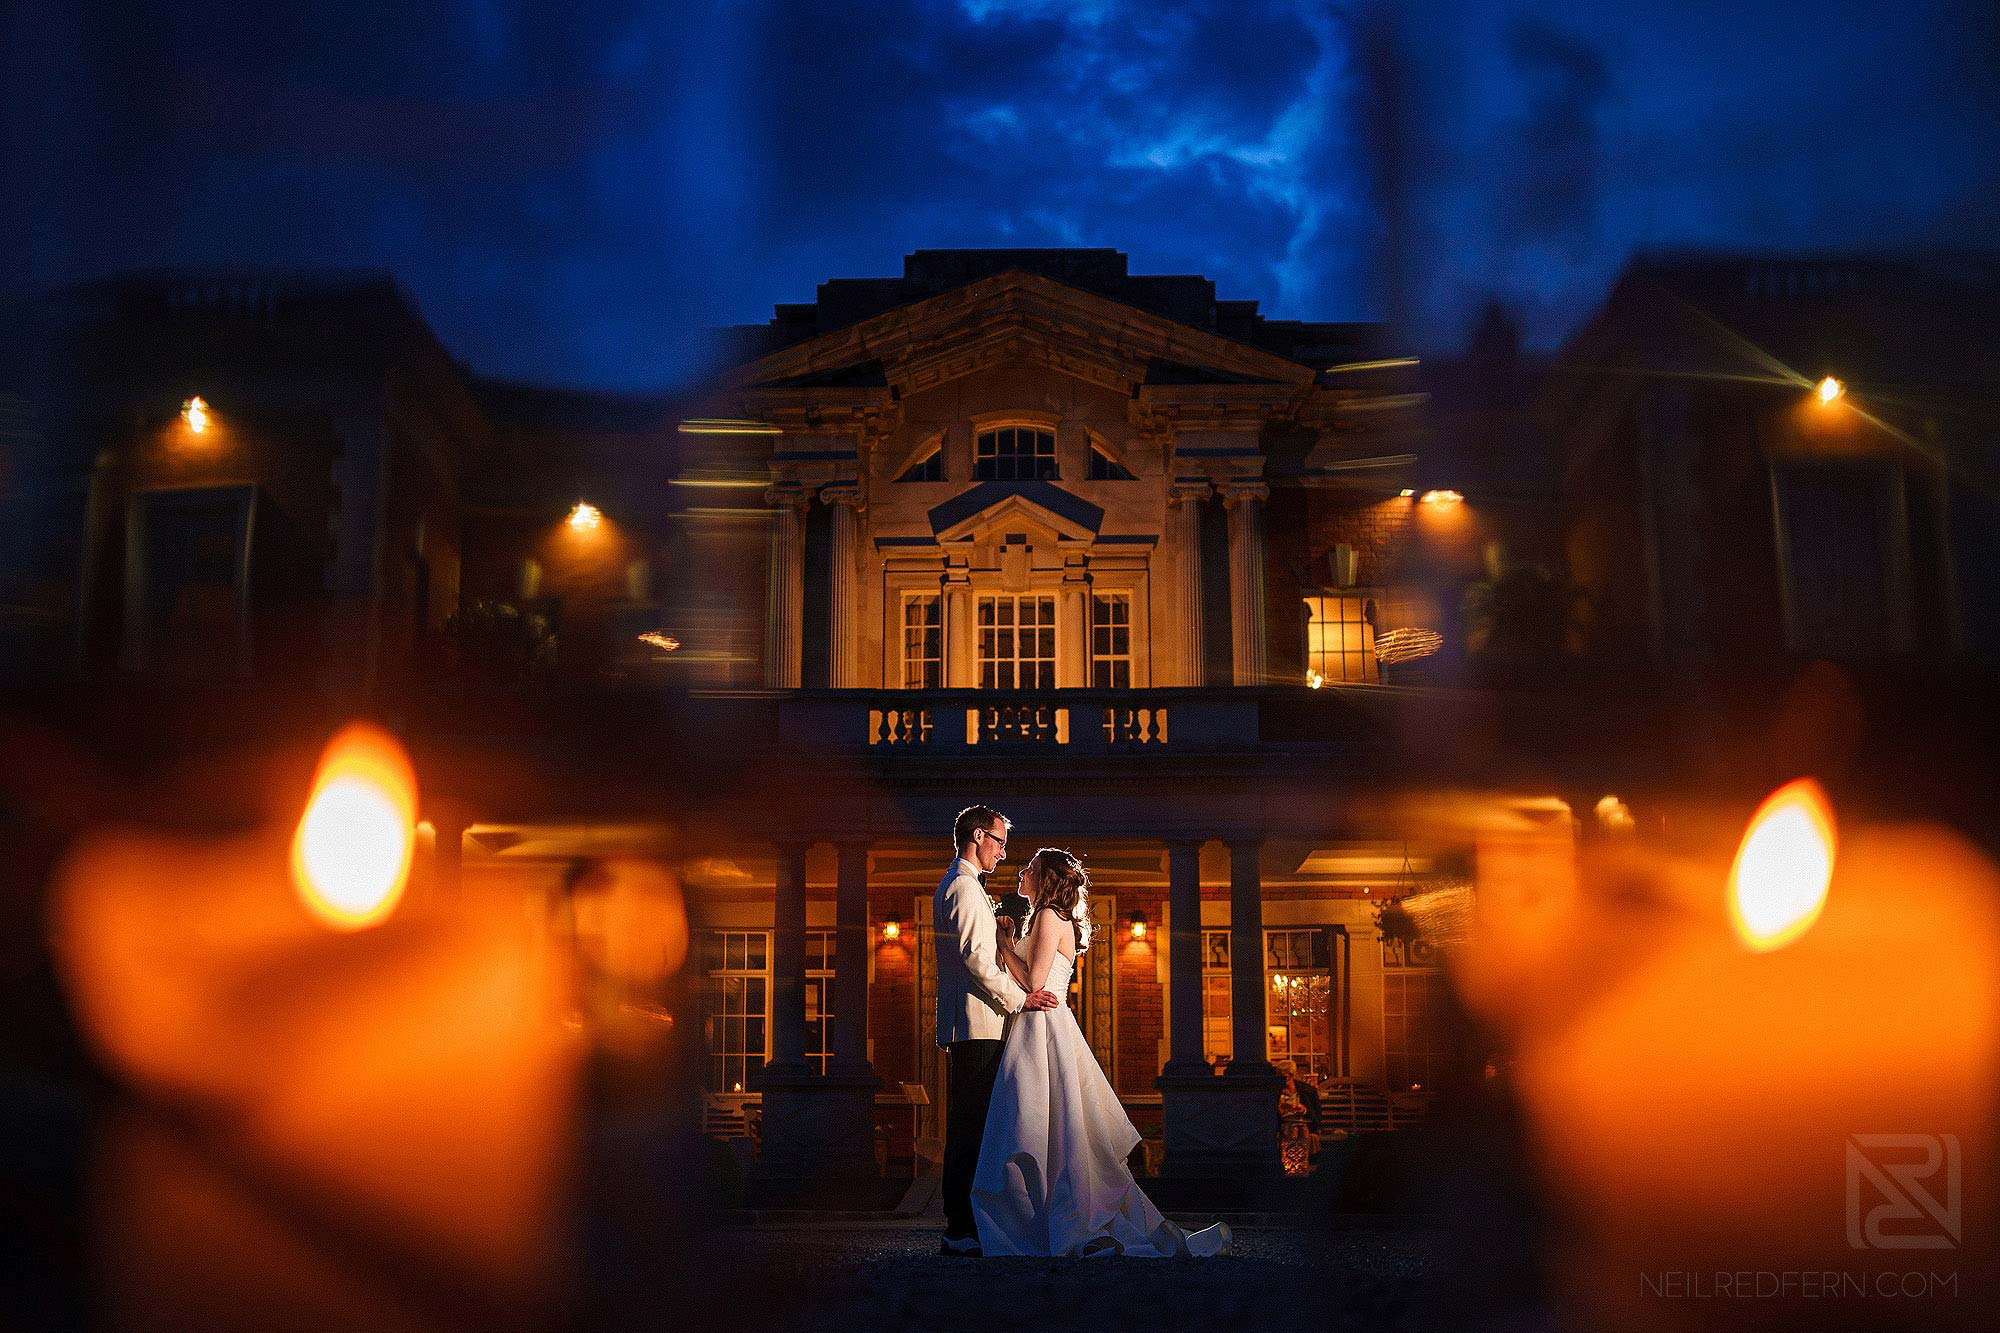 off camera flash portrait of bride and groom outside Eaves Hall at night